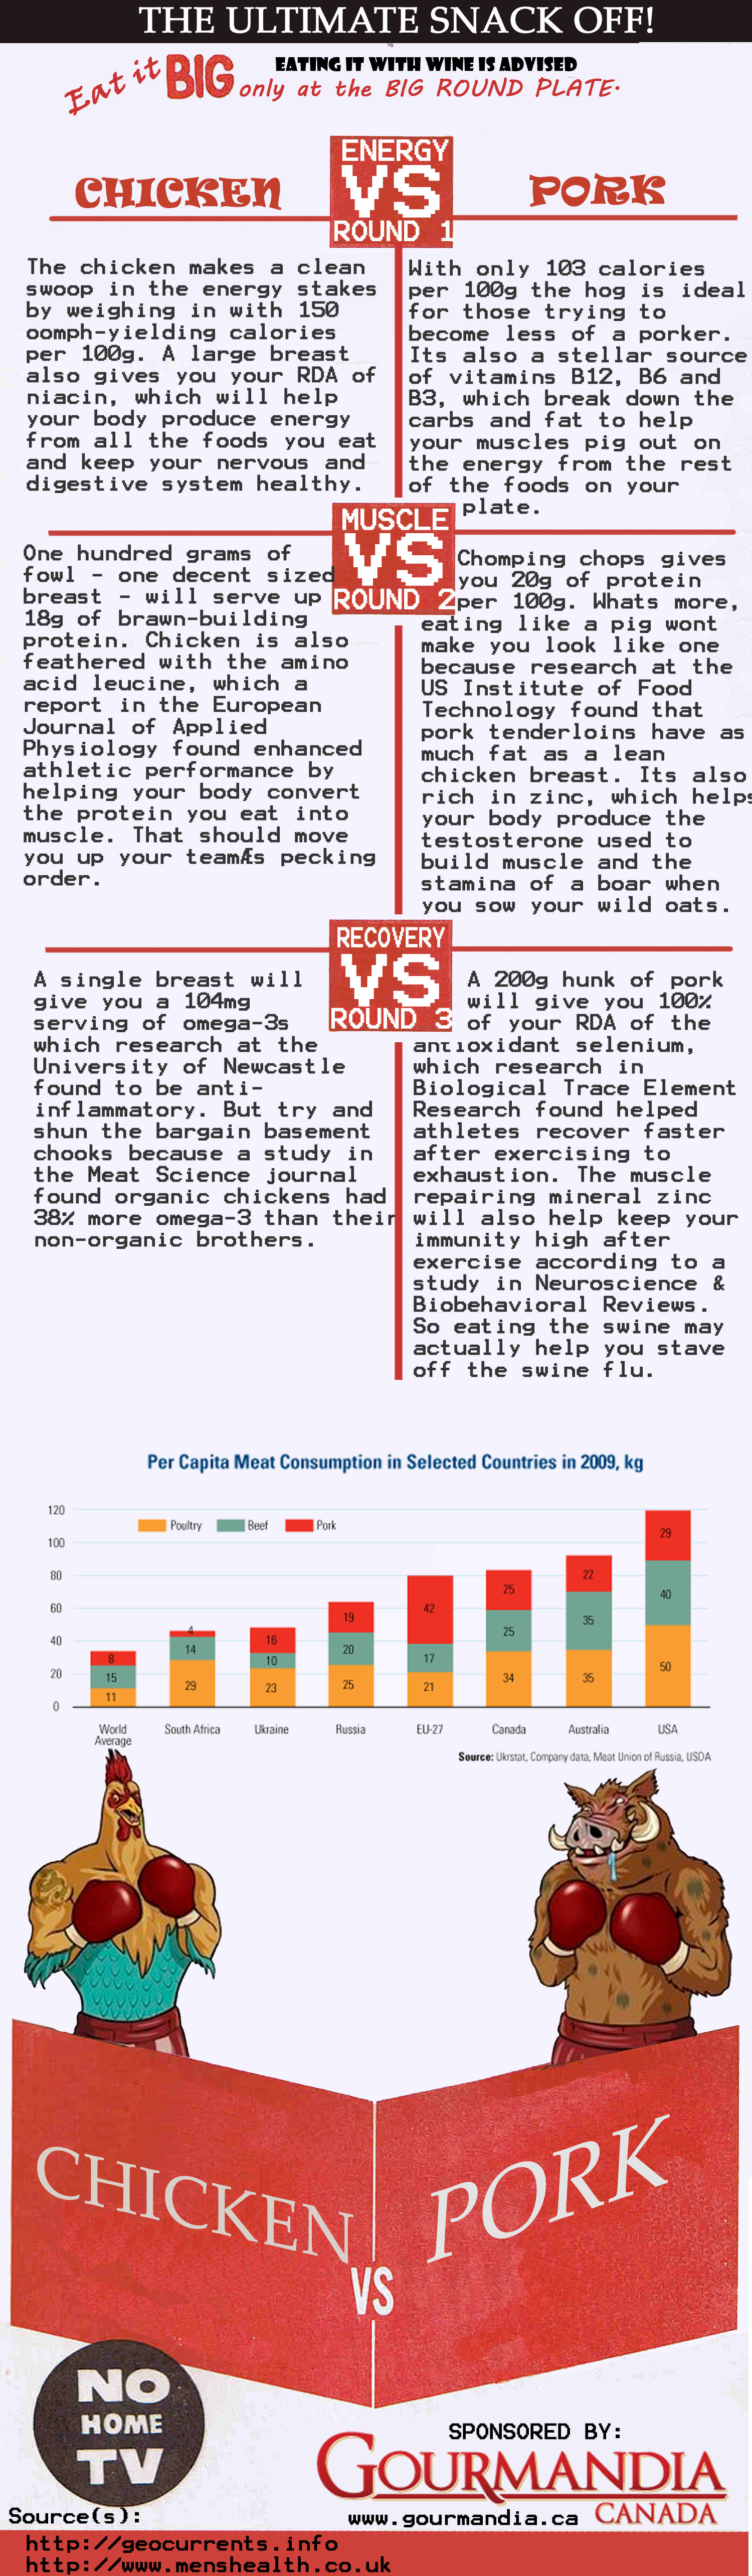 Chicken VS Pork Infographic